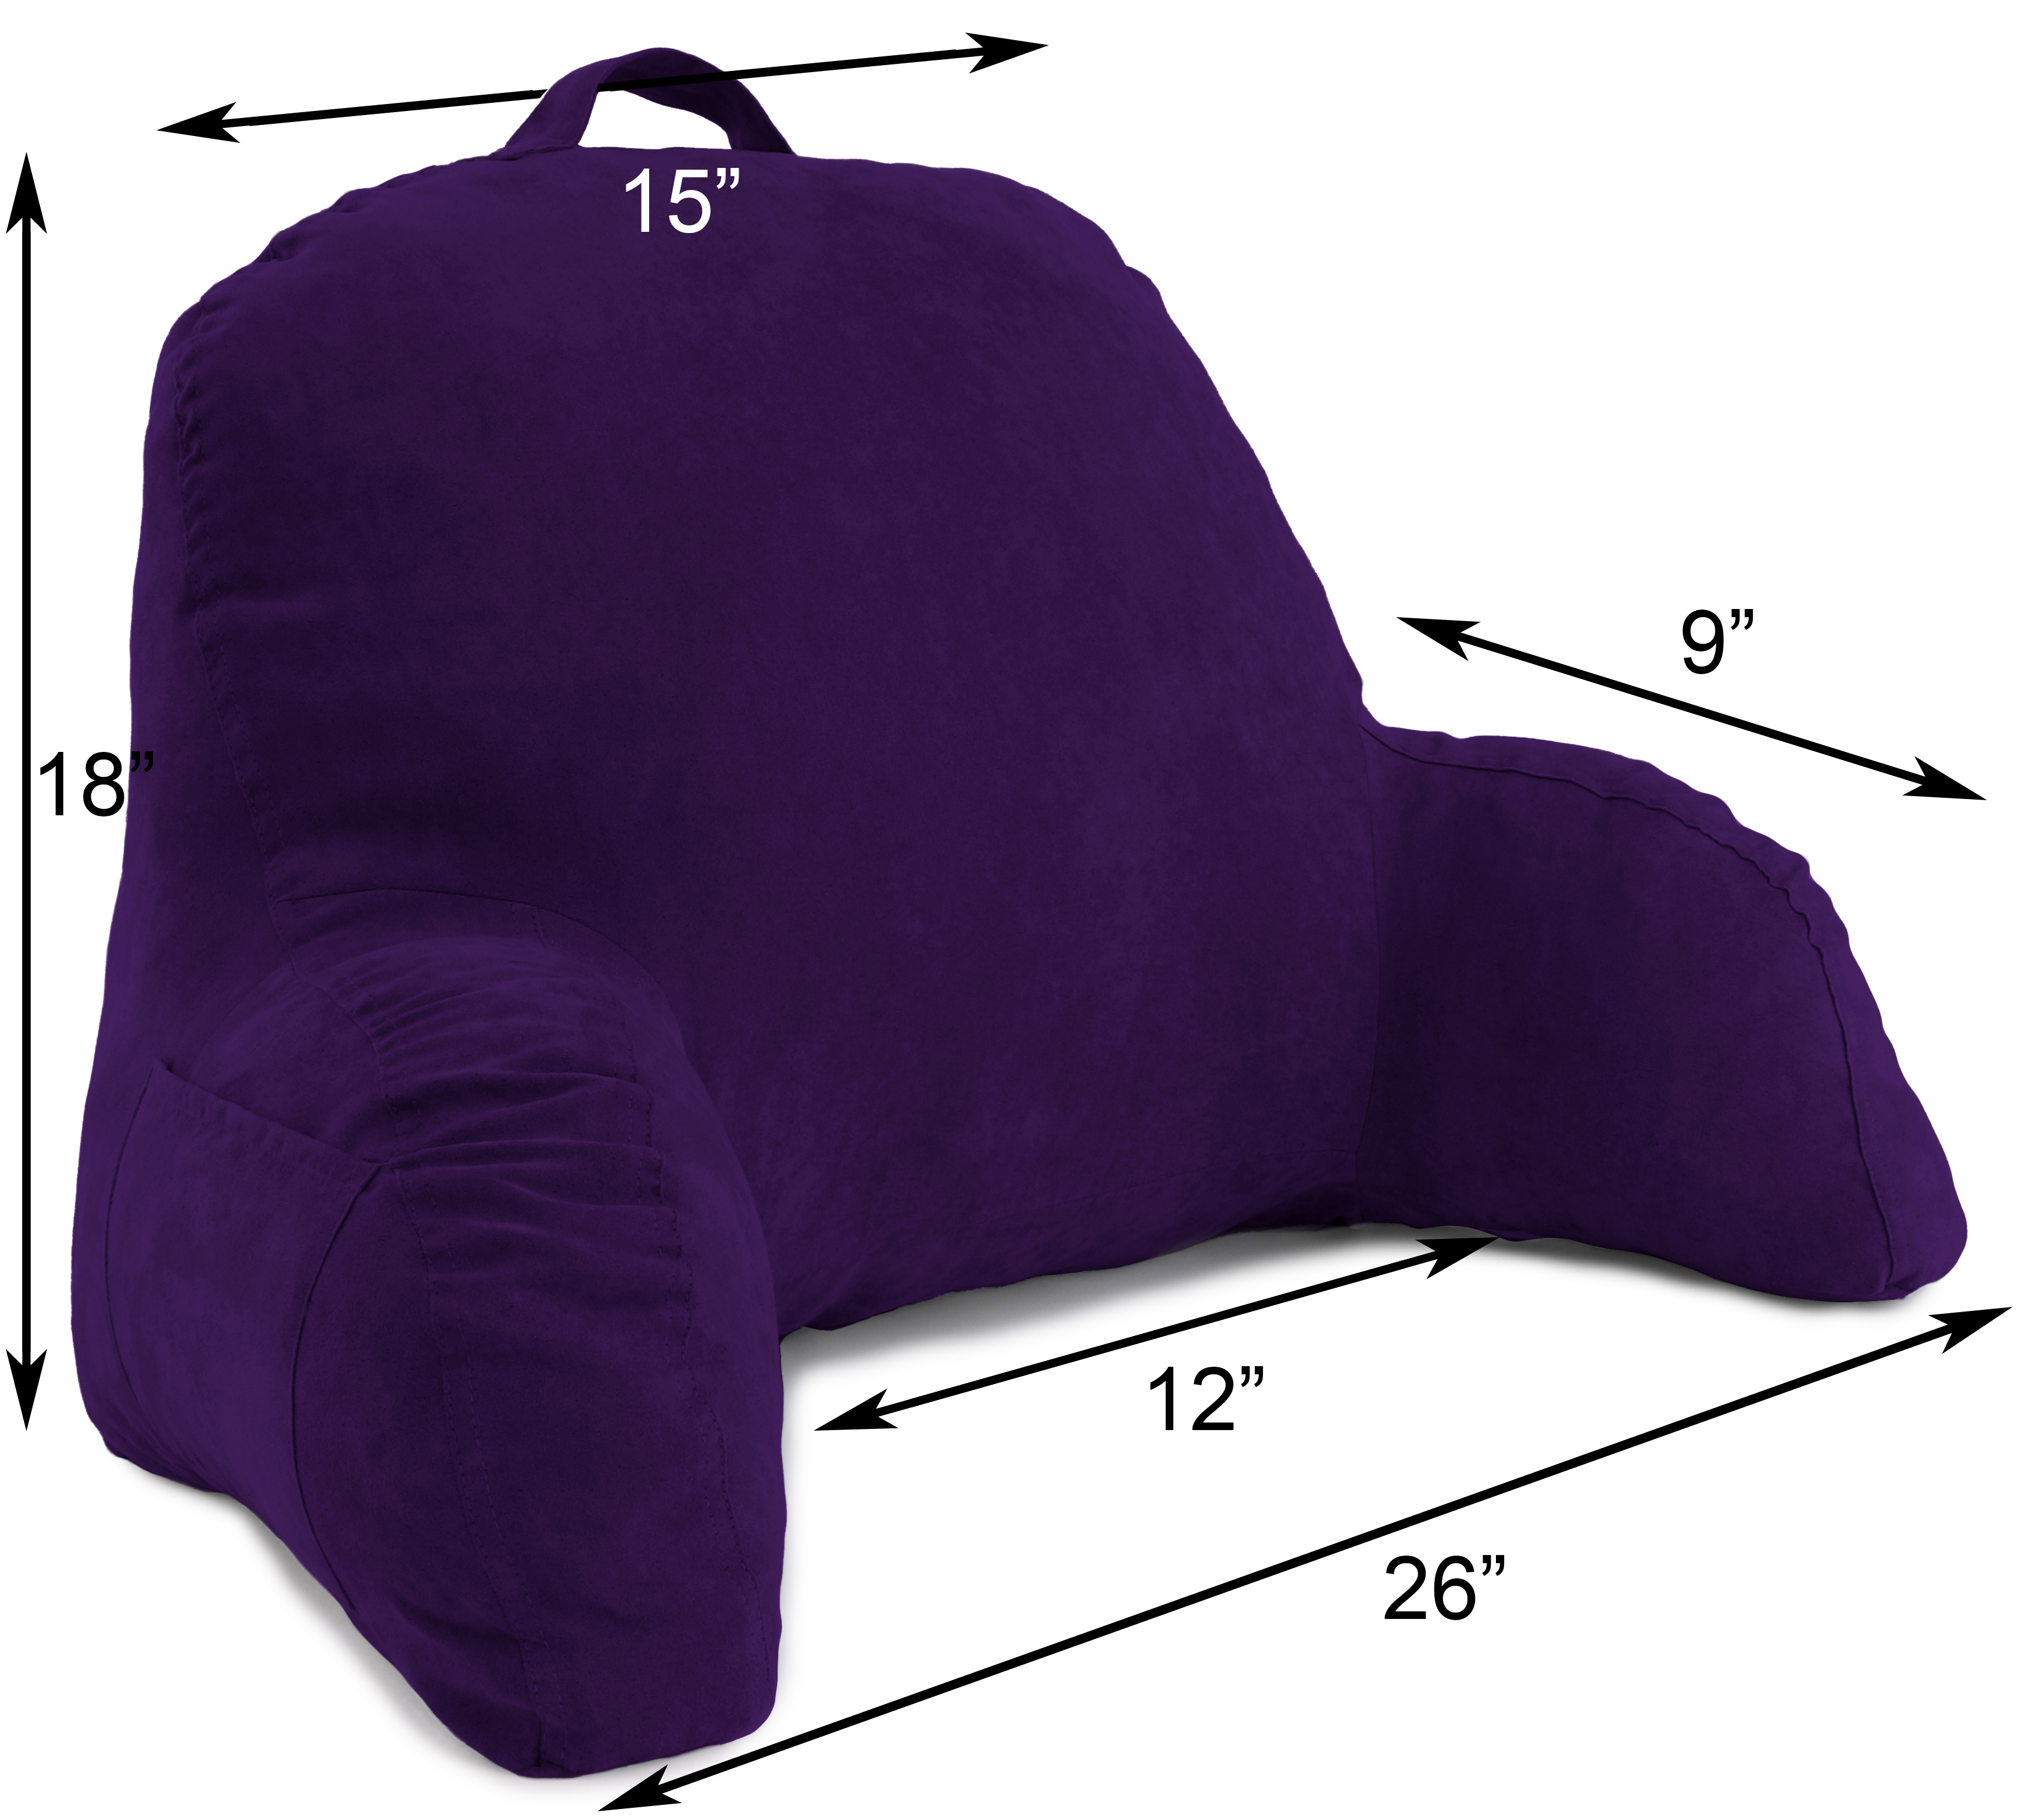 Microsuede-Bed-Rest-Reading-and-Bed-Rest-Lounger-Bed-Pillow thumbnail 36